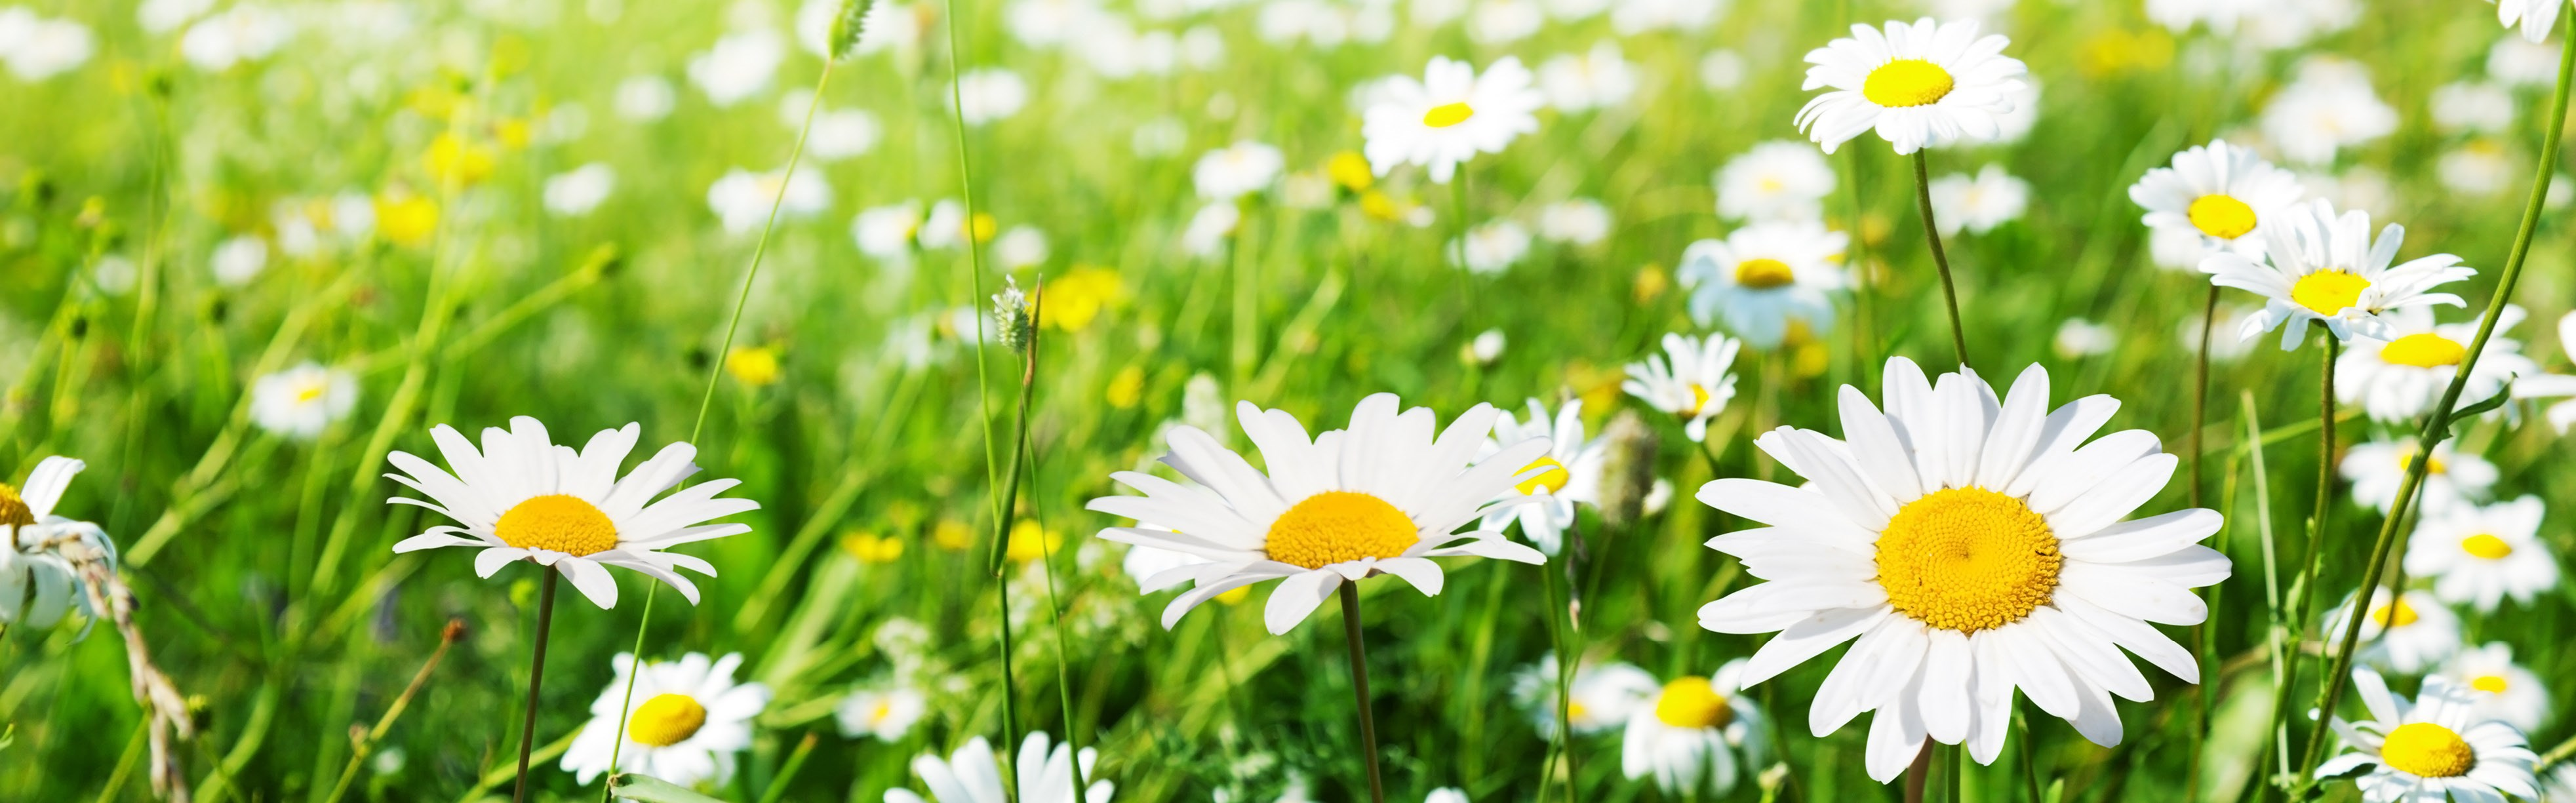 A Field of Daisies